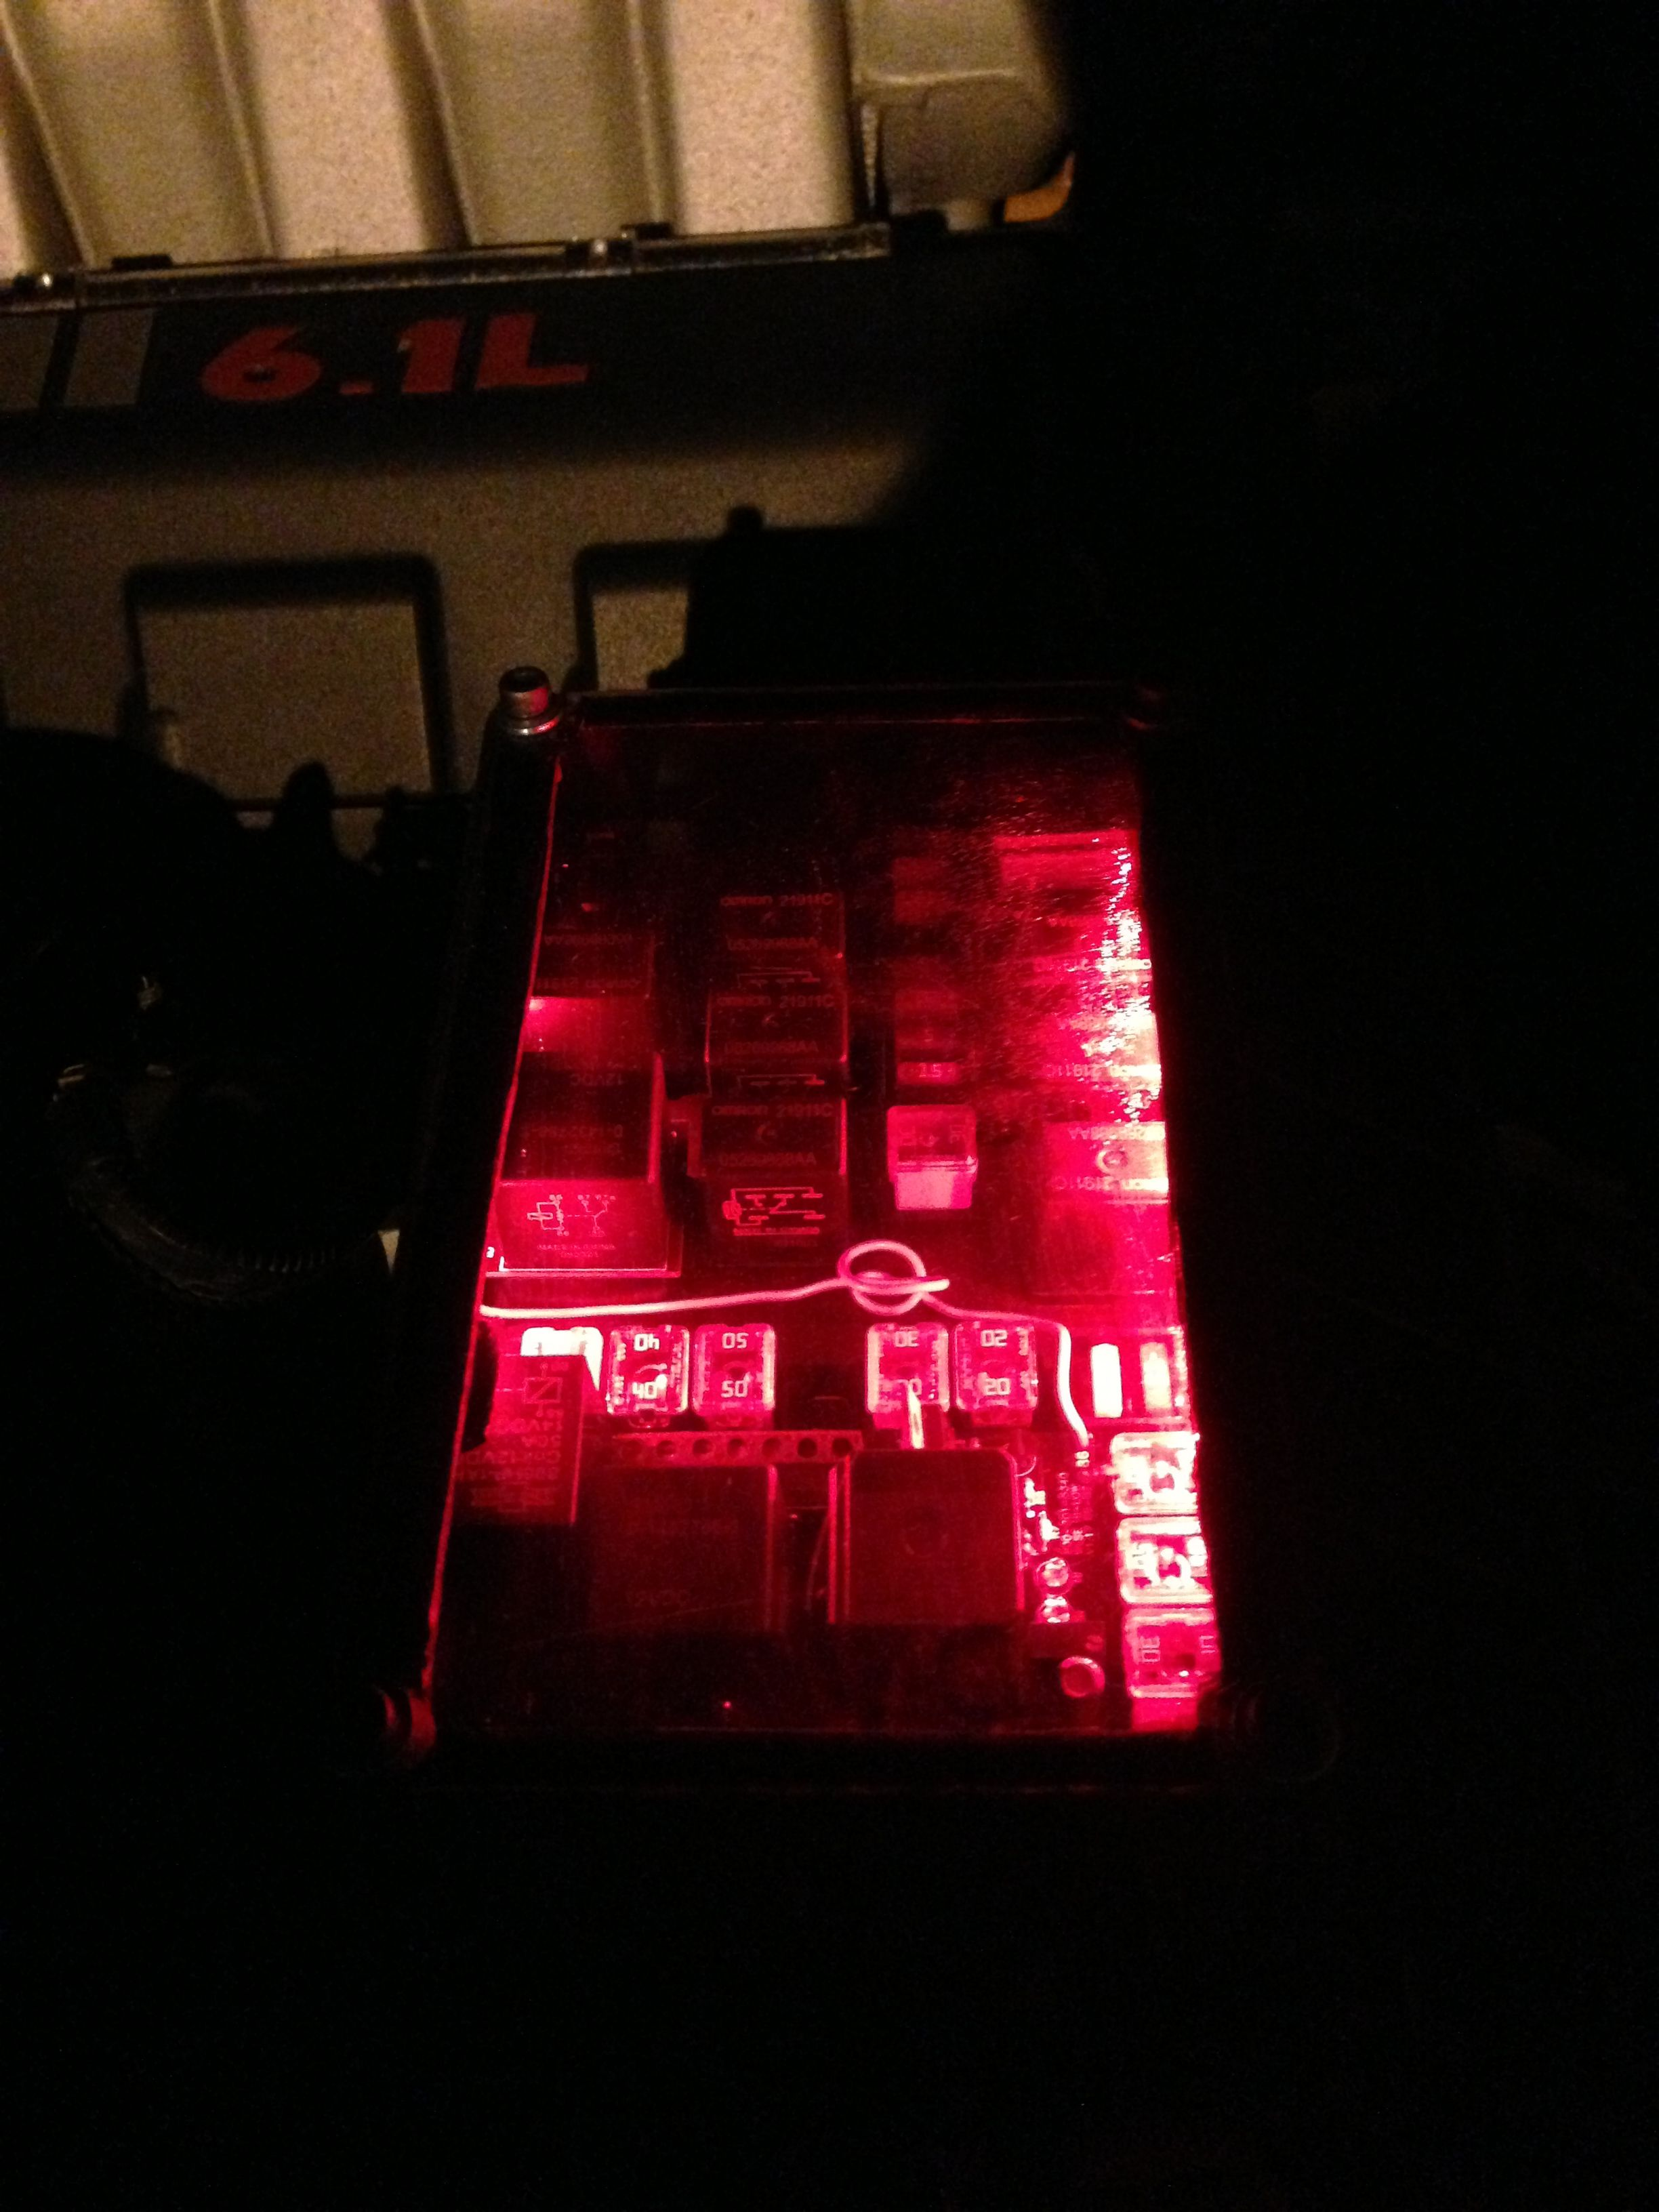 2006 Dodge Charger SRT8 Fuse box.